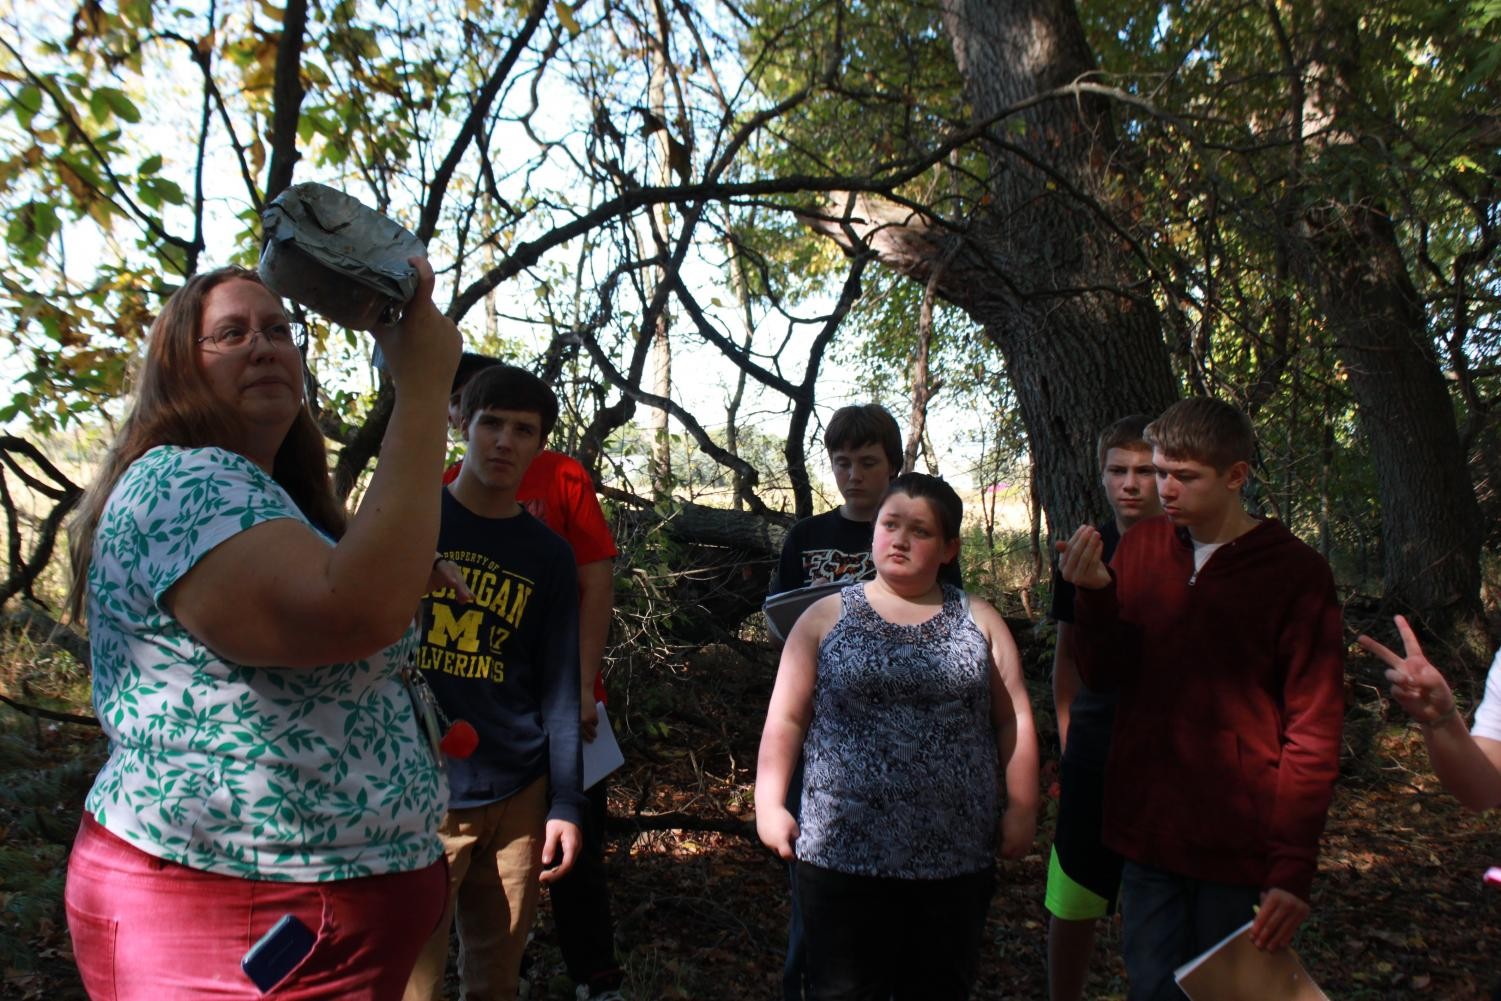 Looking into the plastic container, long-term substitute teacher Hannah Reyes describes each object's state of decay to the wildlife biology class at the outdoor nature site. The students take notes for a project in their wildlife biology class about the effects of various types of landfills. Afterward, junior Gage Place, sophomore Toby French, freshmen Clayton Allen and sophomore Morgan Payne discuss with Reyes what landfill type they believe causes the most harm to the environment.